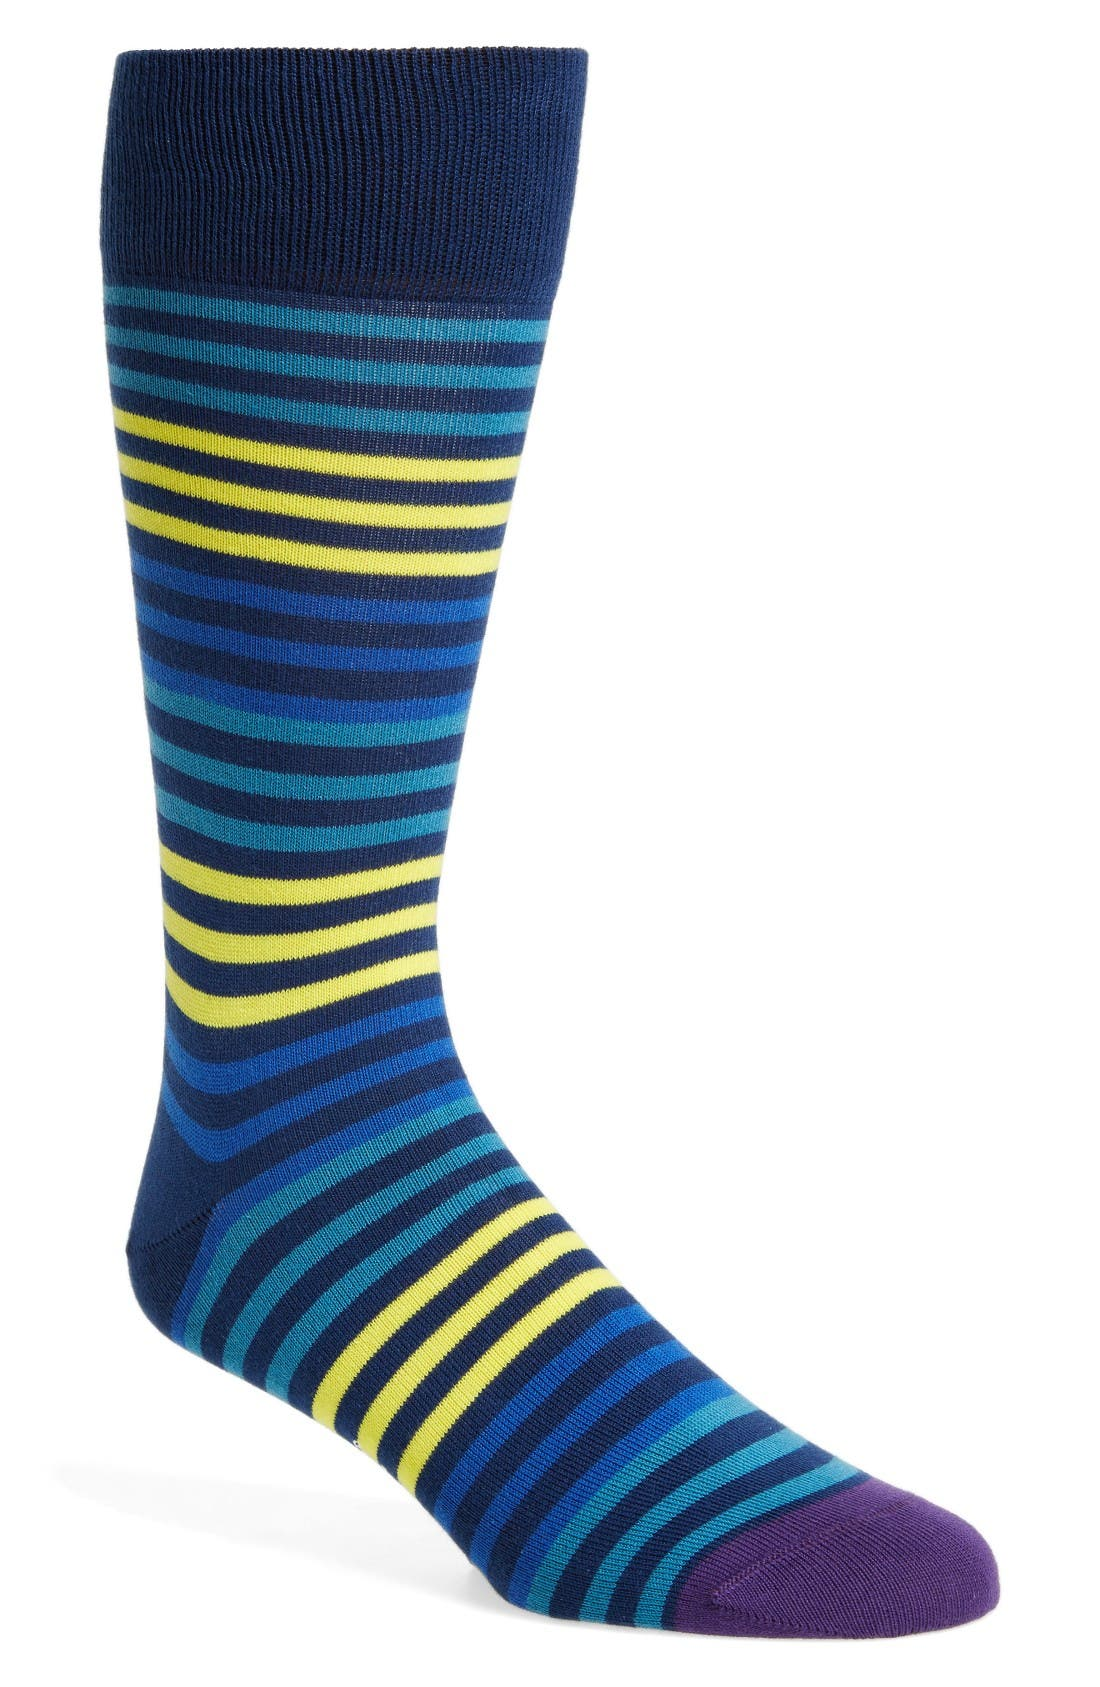 Main Image - Paul Smith Sanny Stripe Socks